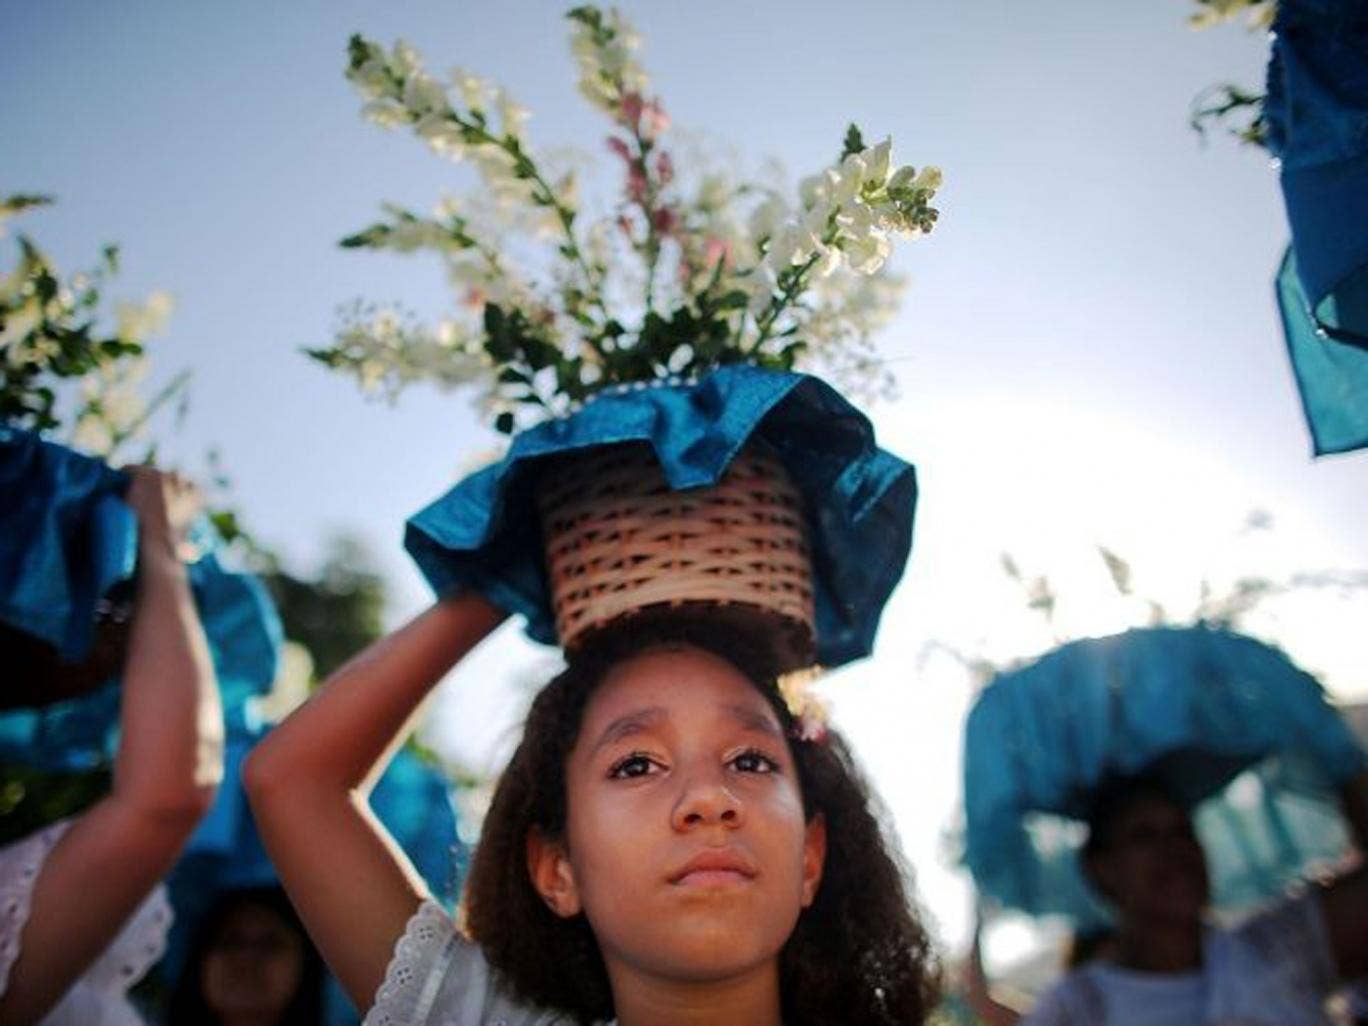 Women carry offerings at a ceremony honoring Iemanja, Goddess of the Sea, as part of traditional New Year's celebrations on the sands of Copacabana beach in Rio de Janeiro